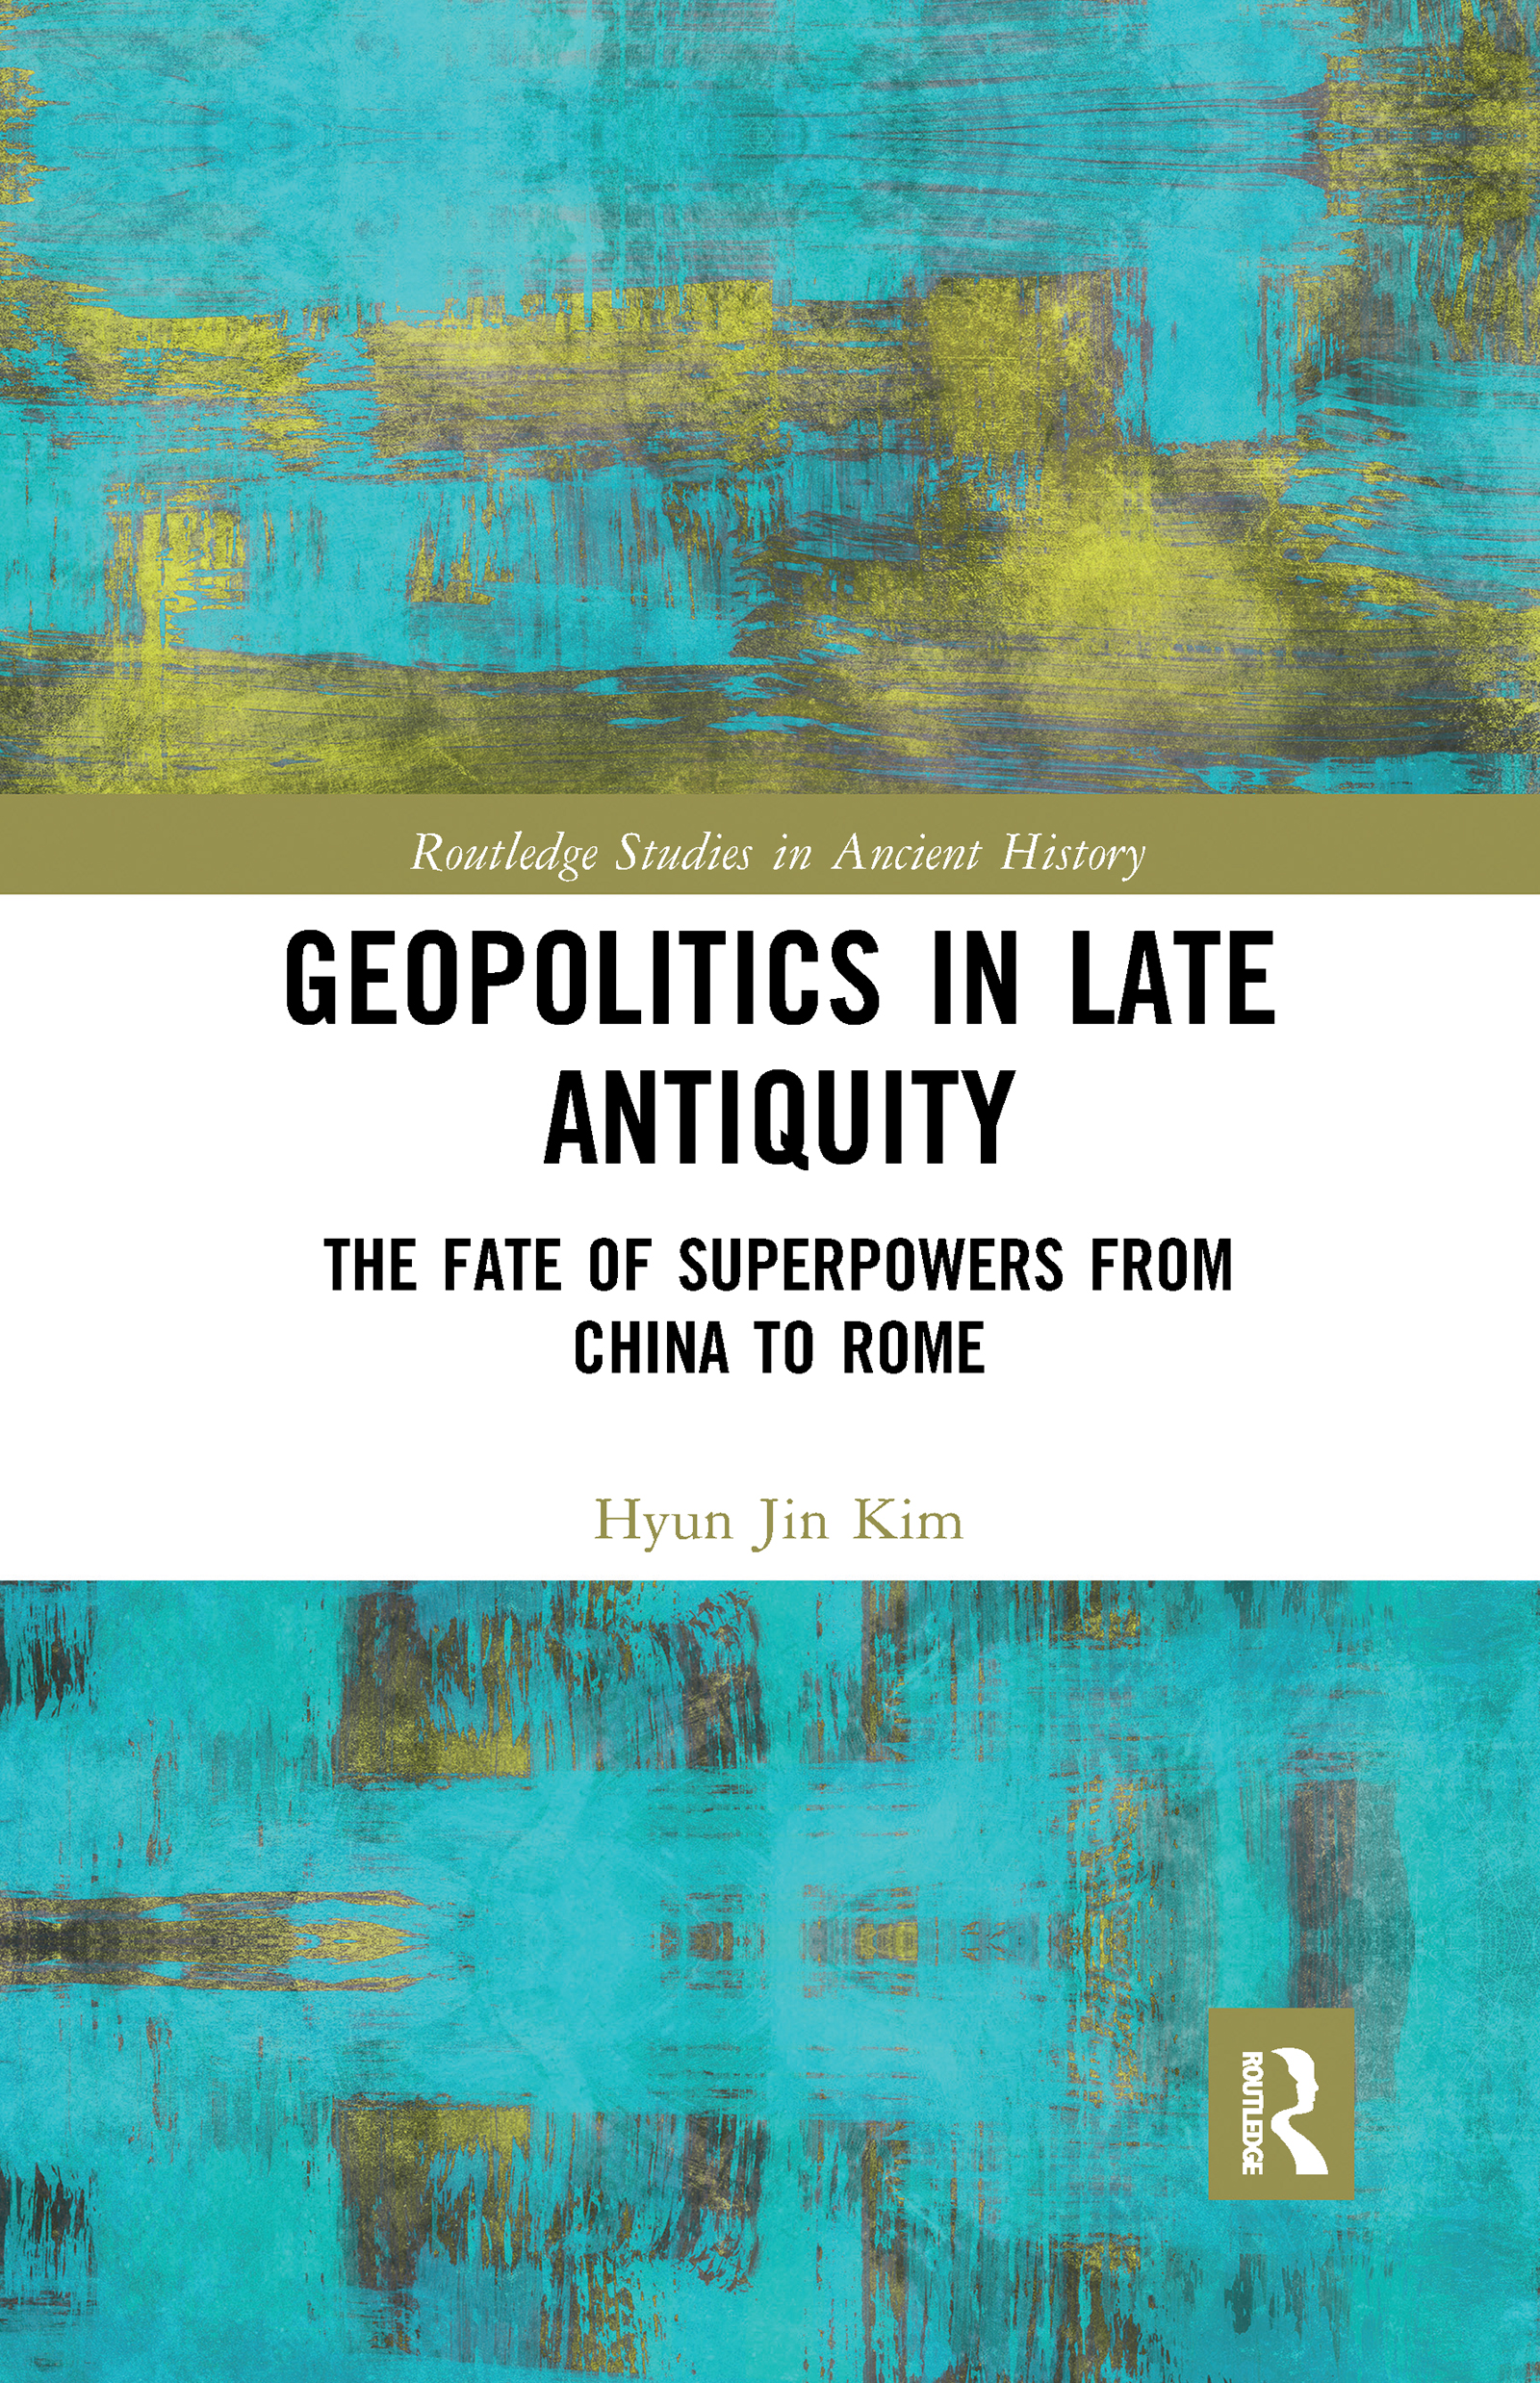 Geopolitics in Late Antiquity